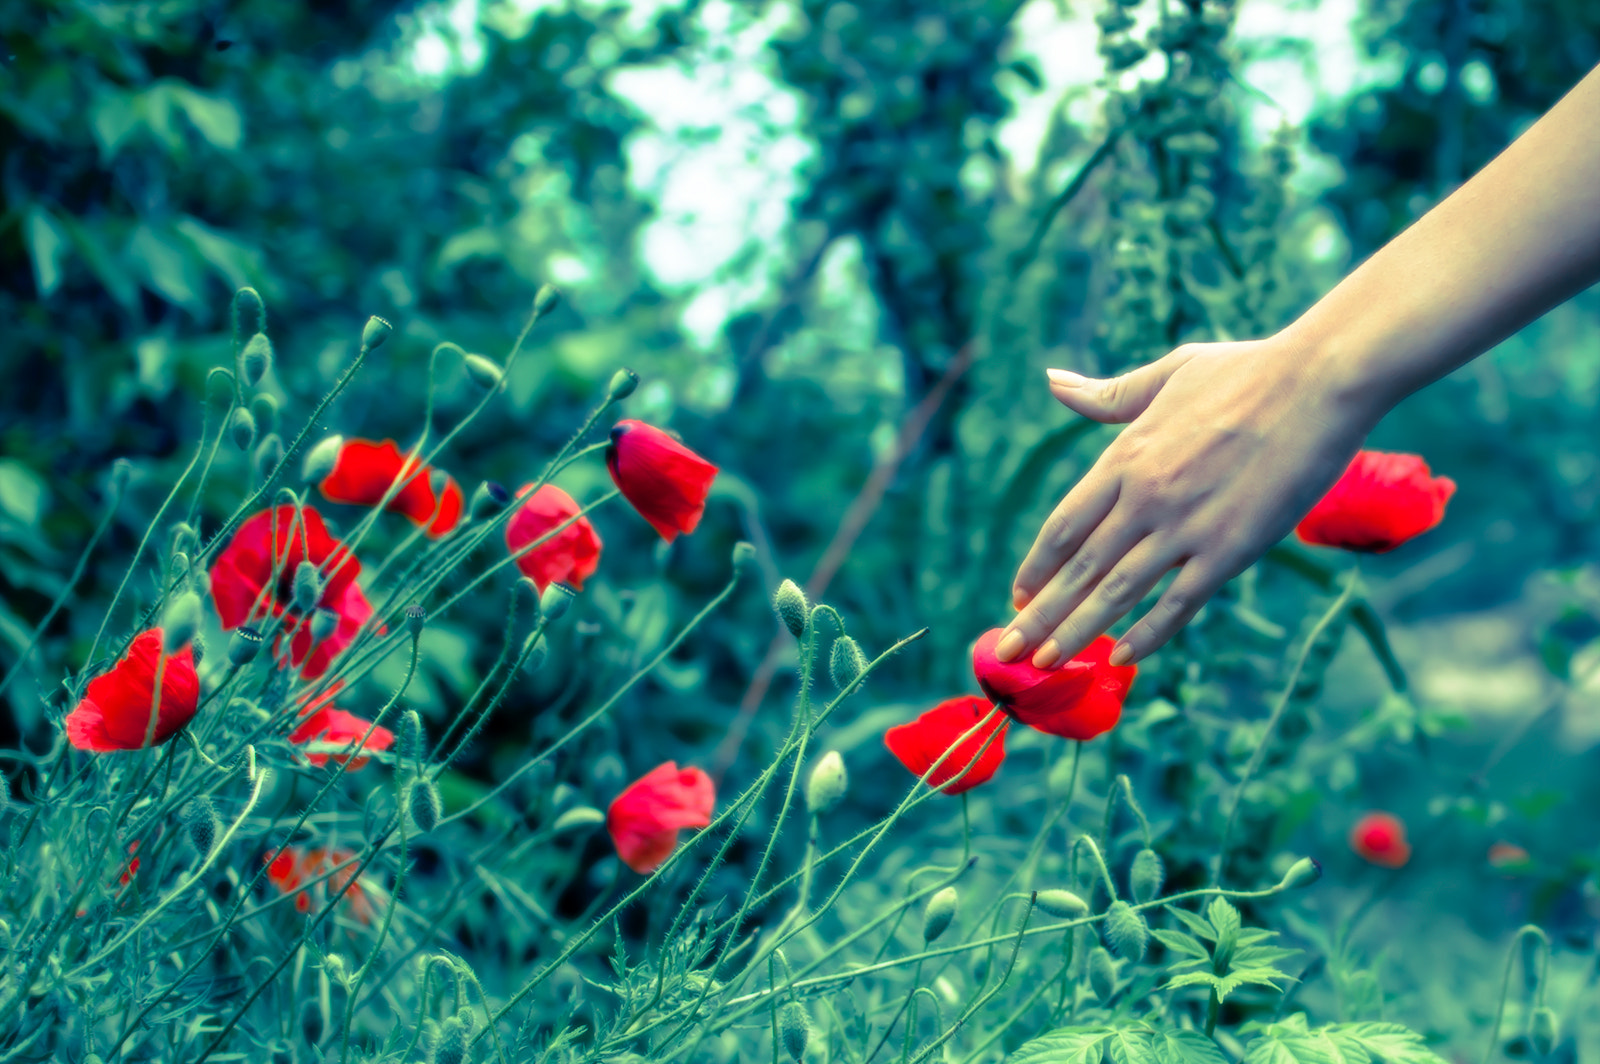 Photograph Touch by Yane Naumoski on 500px